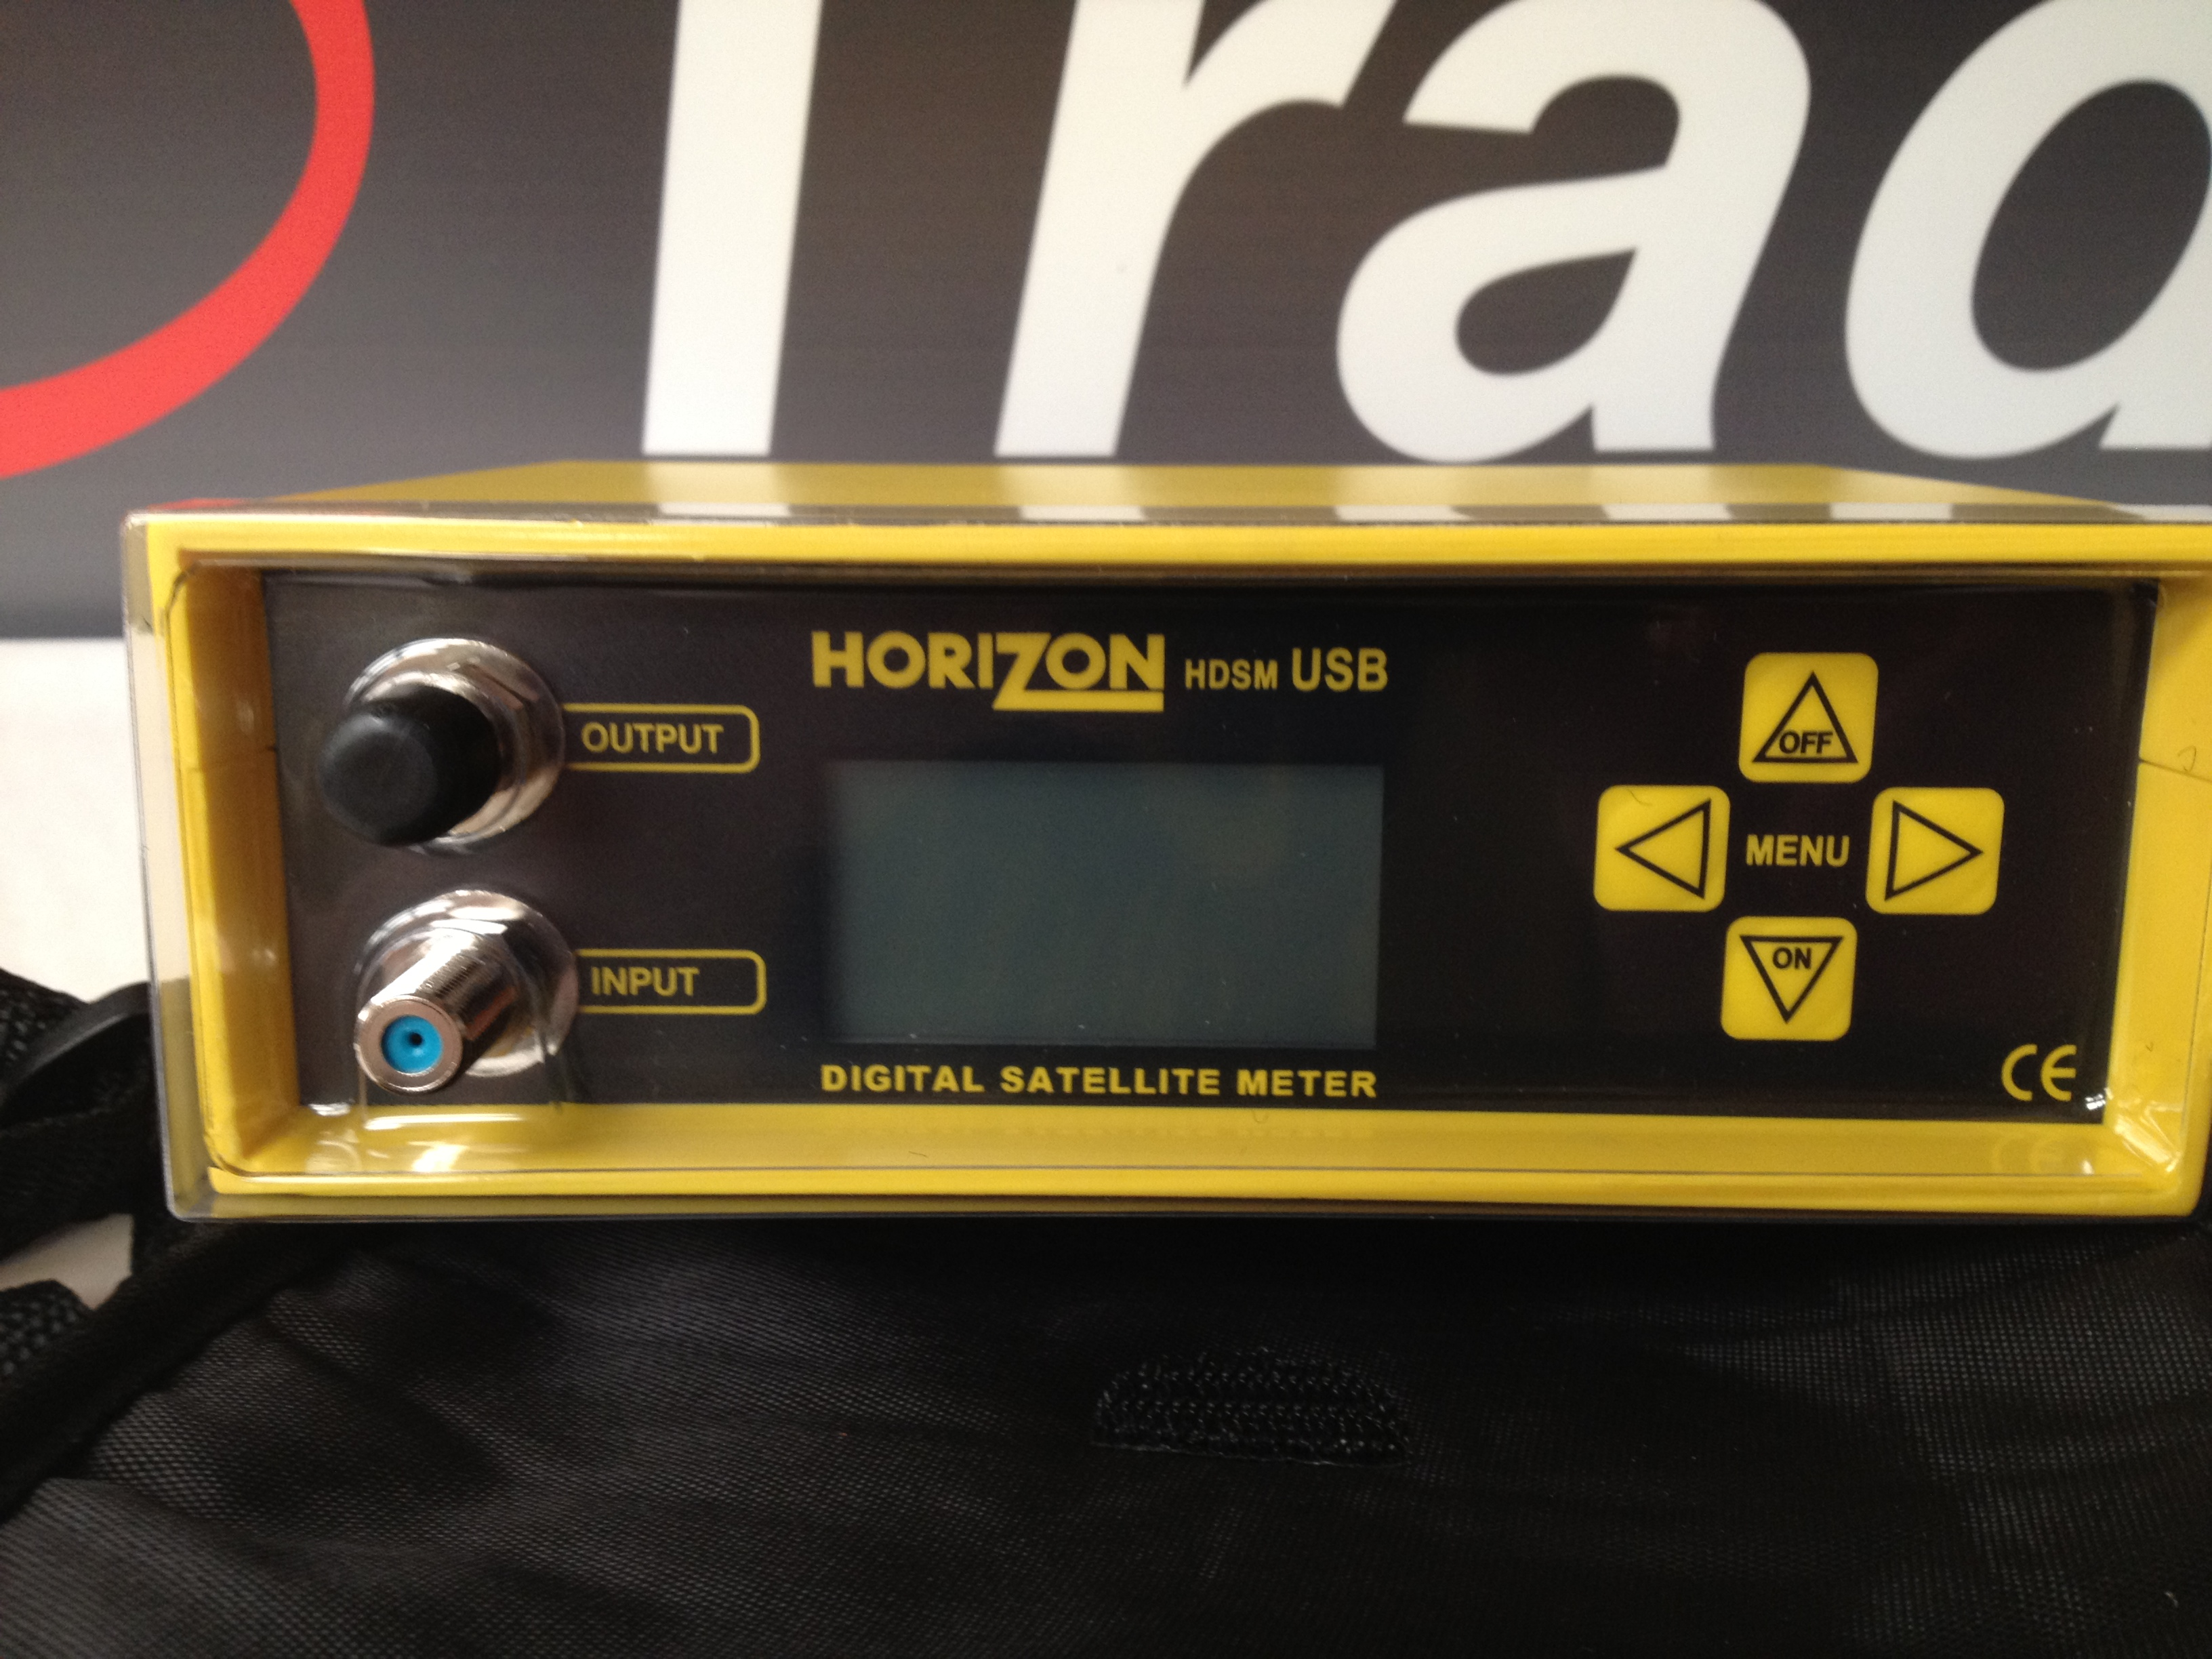 Horizon HDSM USB V3 Satellite Meter